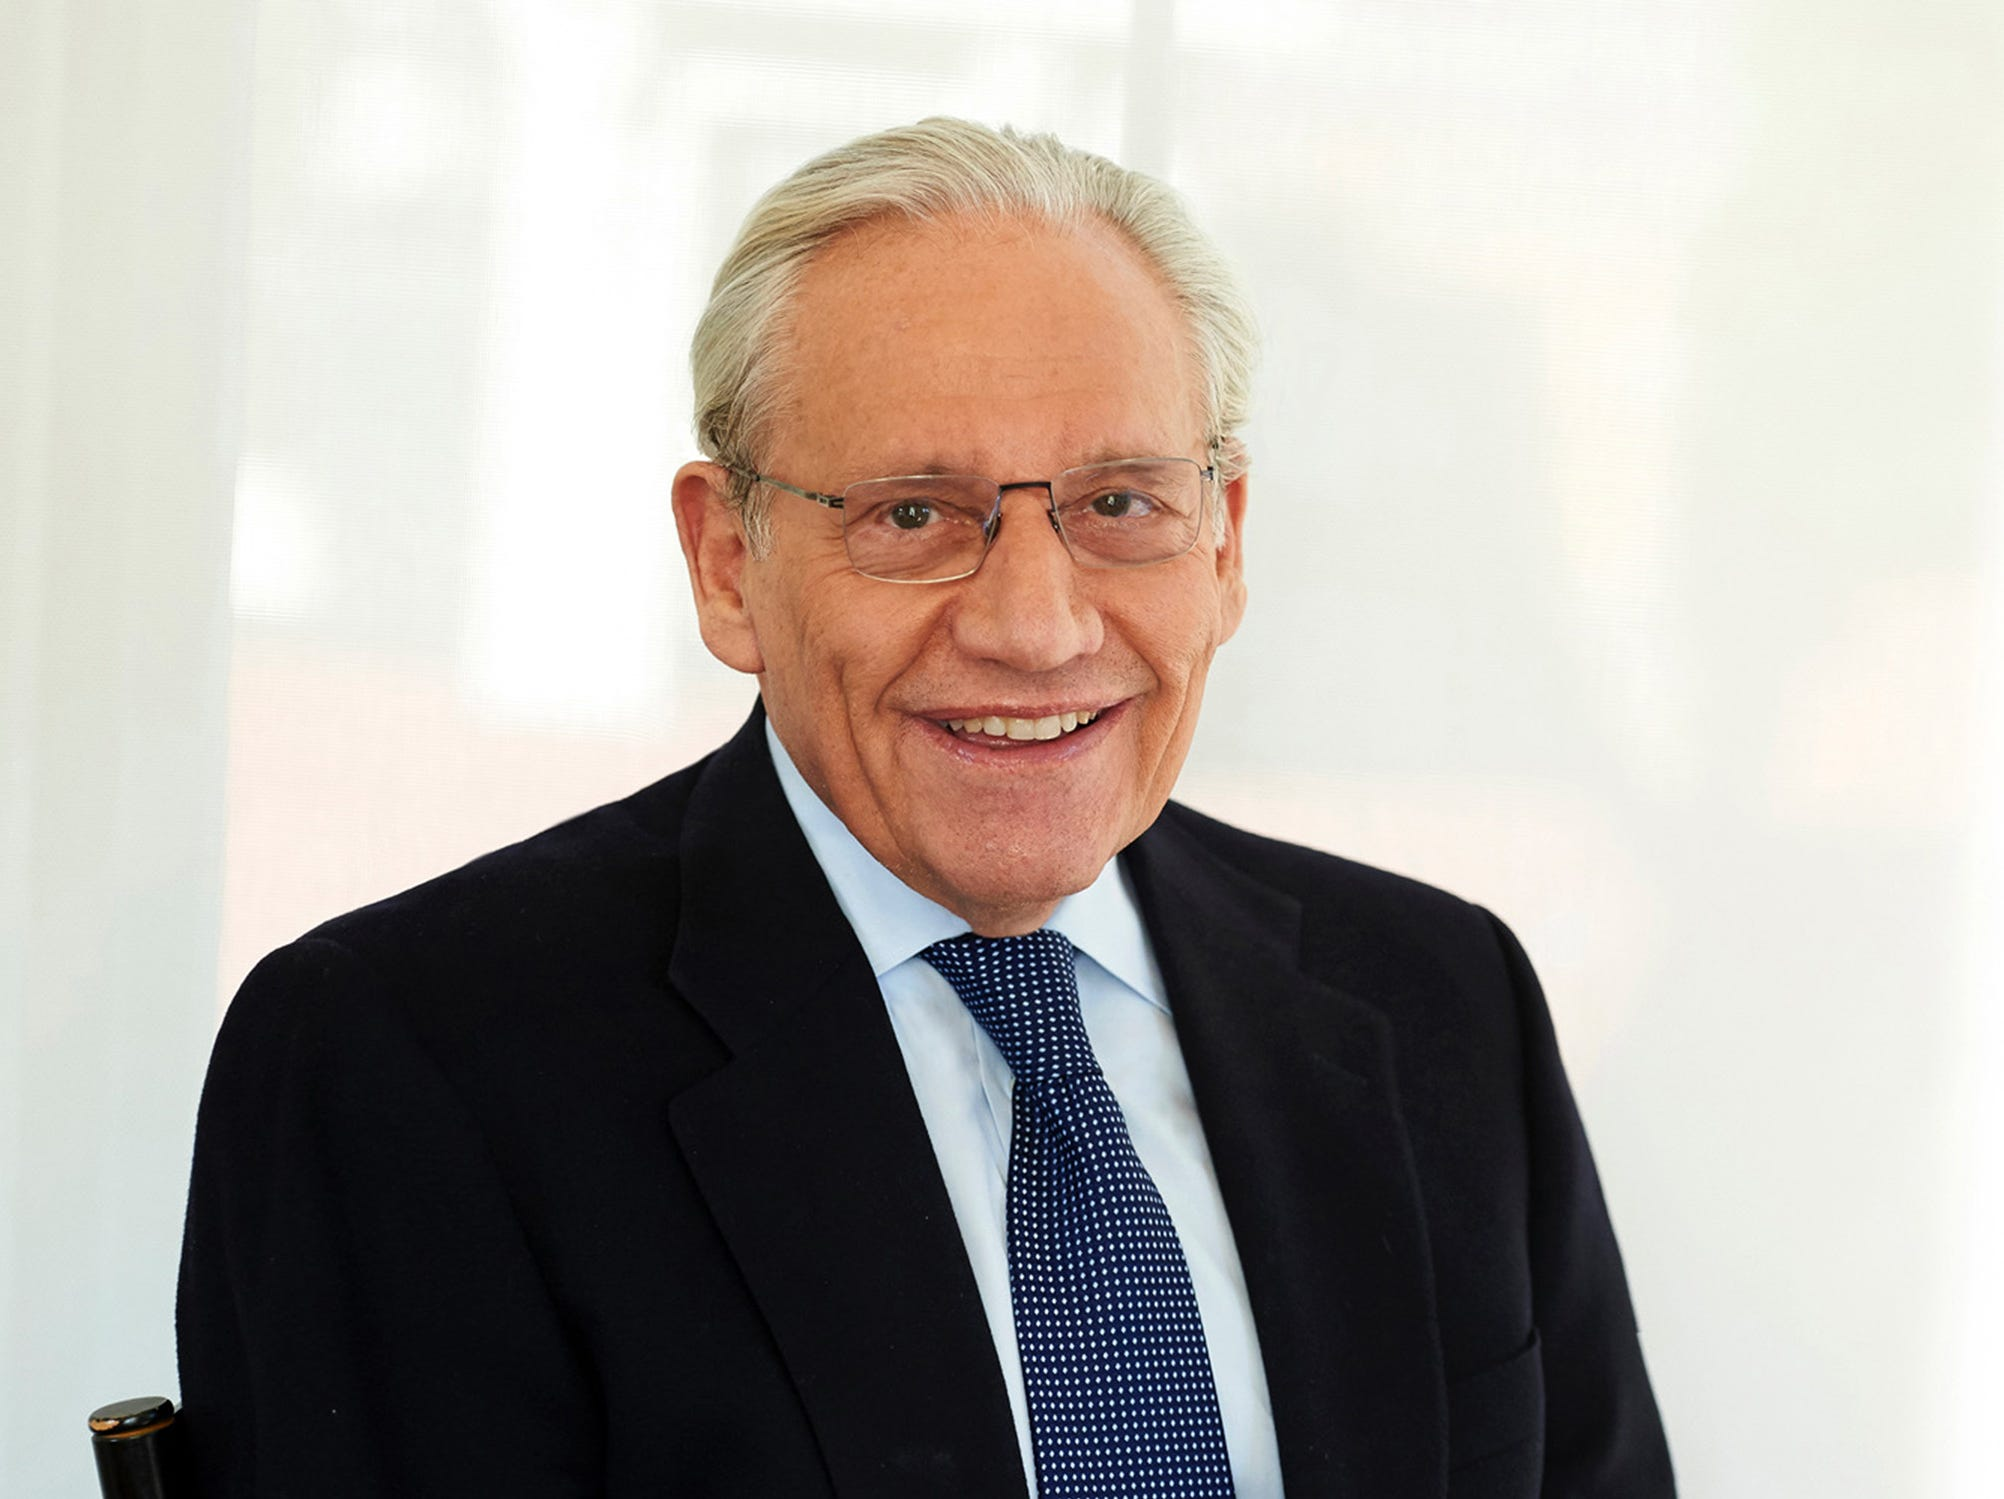 State Theatre to present 'An Evening with Bob Woodward'